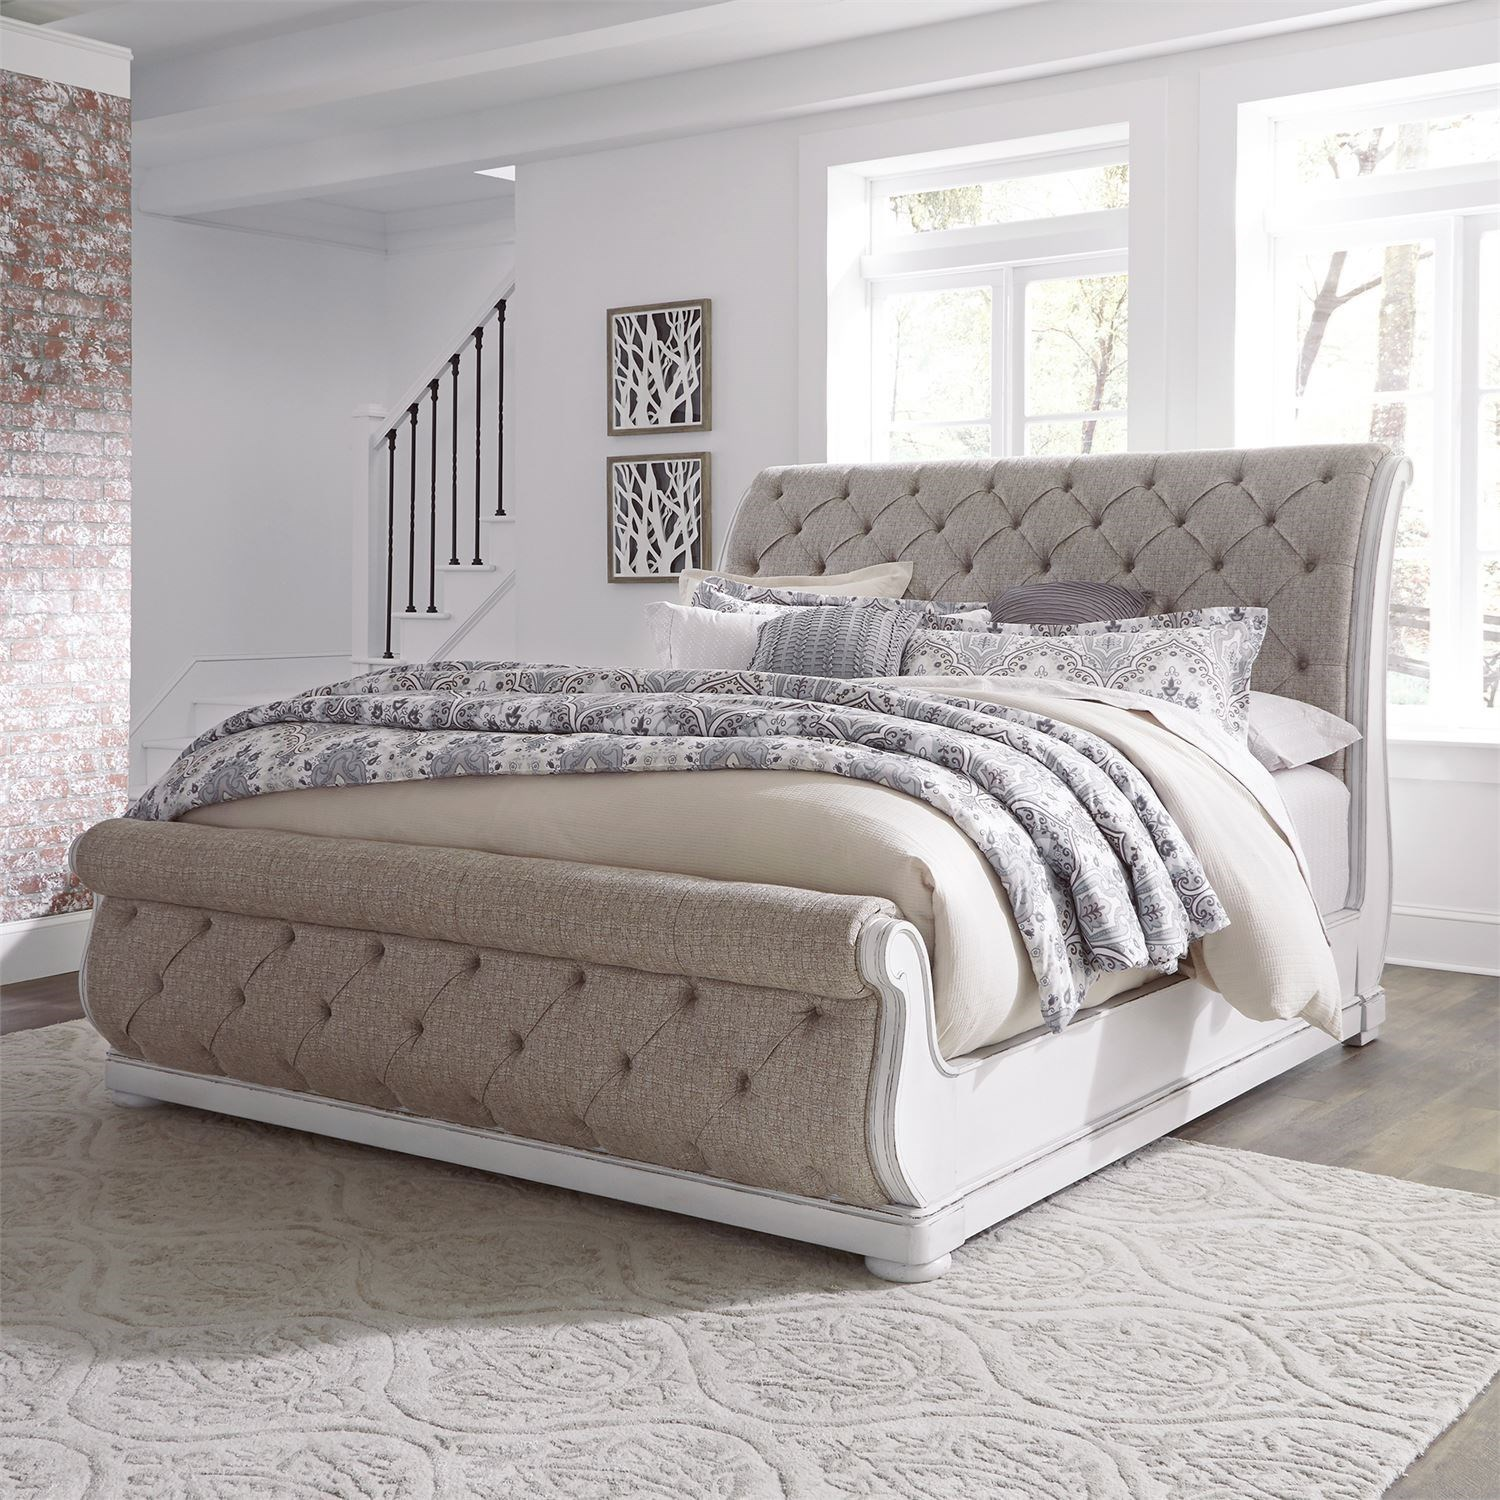 Tufted upholstered sleigh bed Size White Liberty Furniture Magnolia Manorqueen Upholstered Sleigh Bed Faisalawanme Liberty Furniture Magnolia Manor Traditional Queen Upholstered